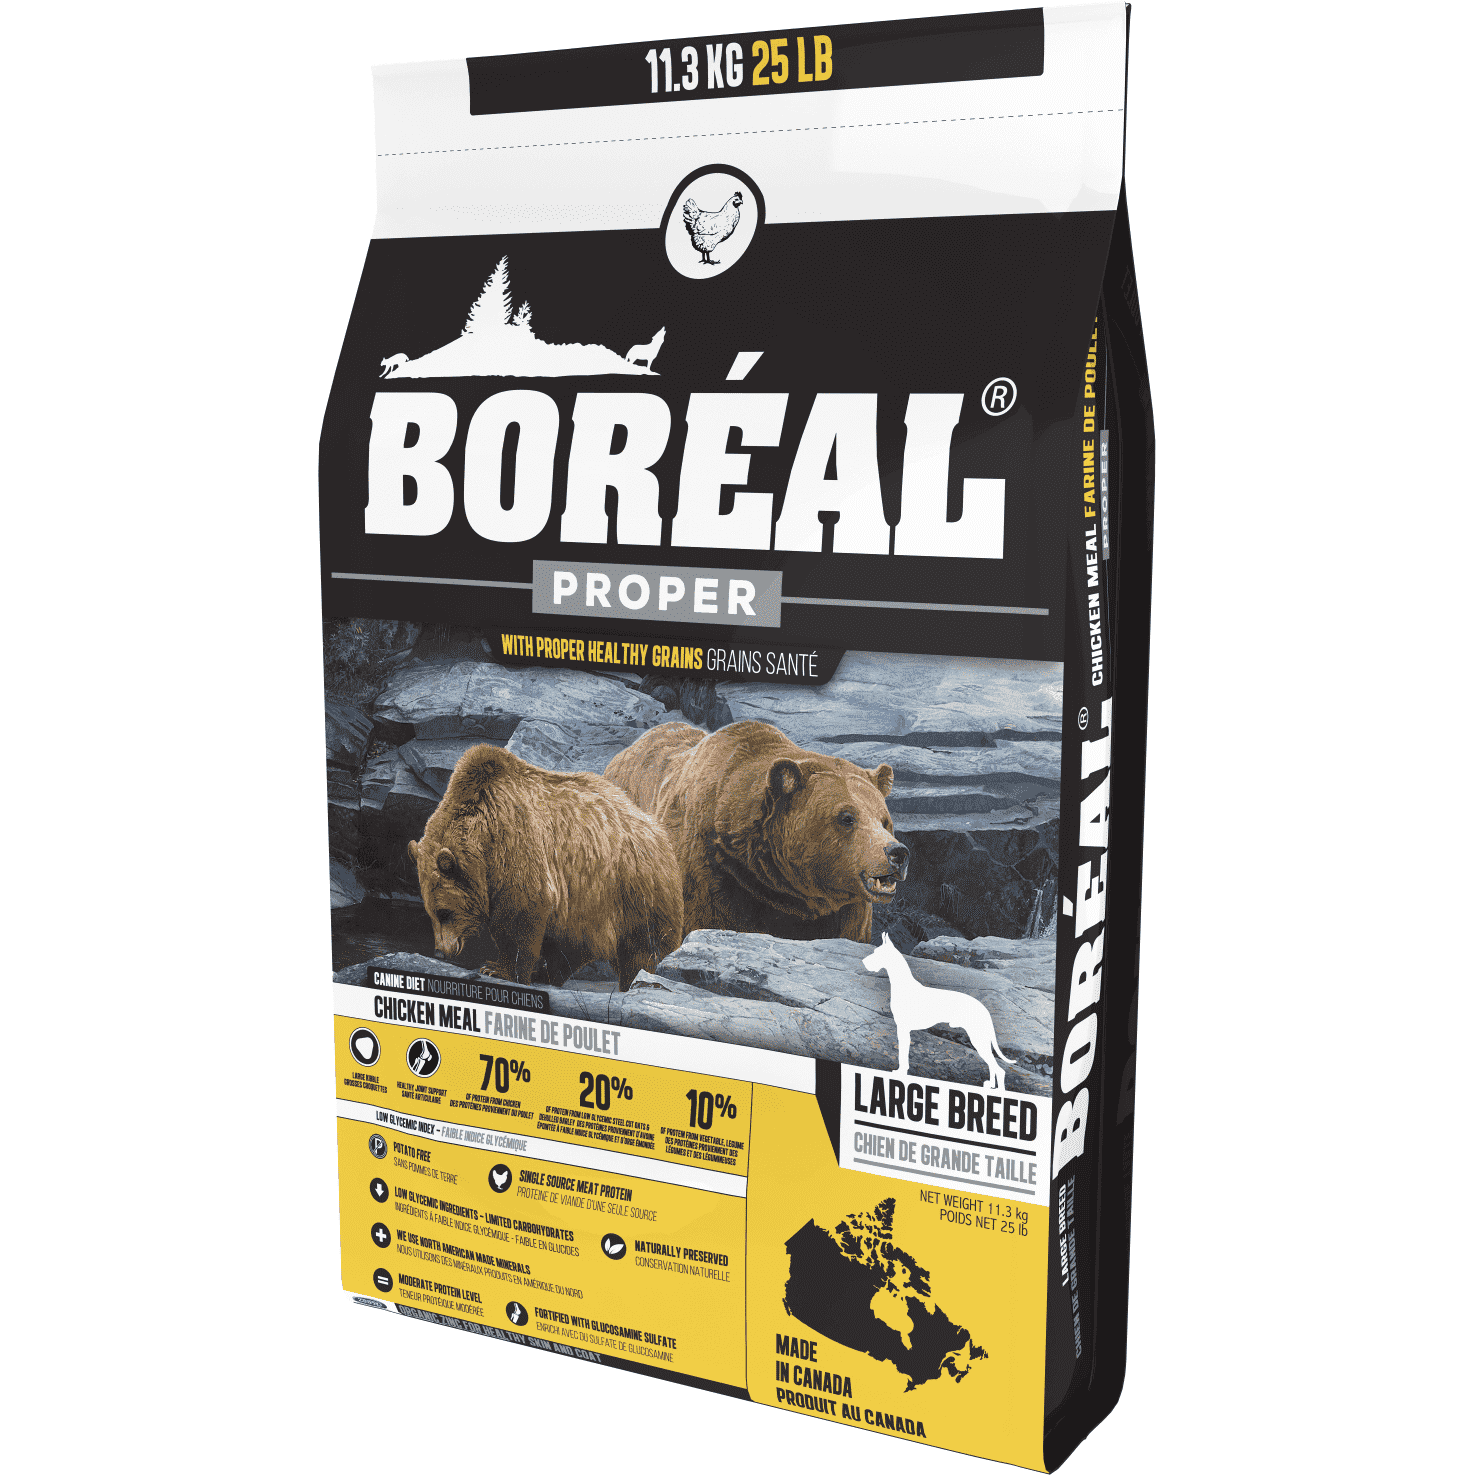 Boreal Dog Adult Proper Large Breed Chicken  Dog Food - PetMax